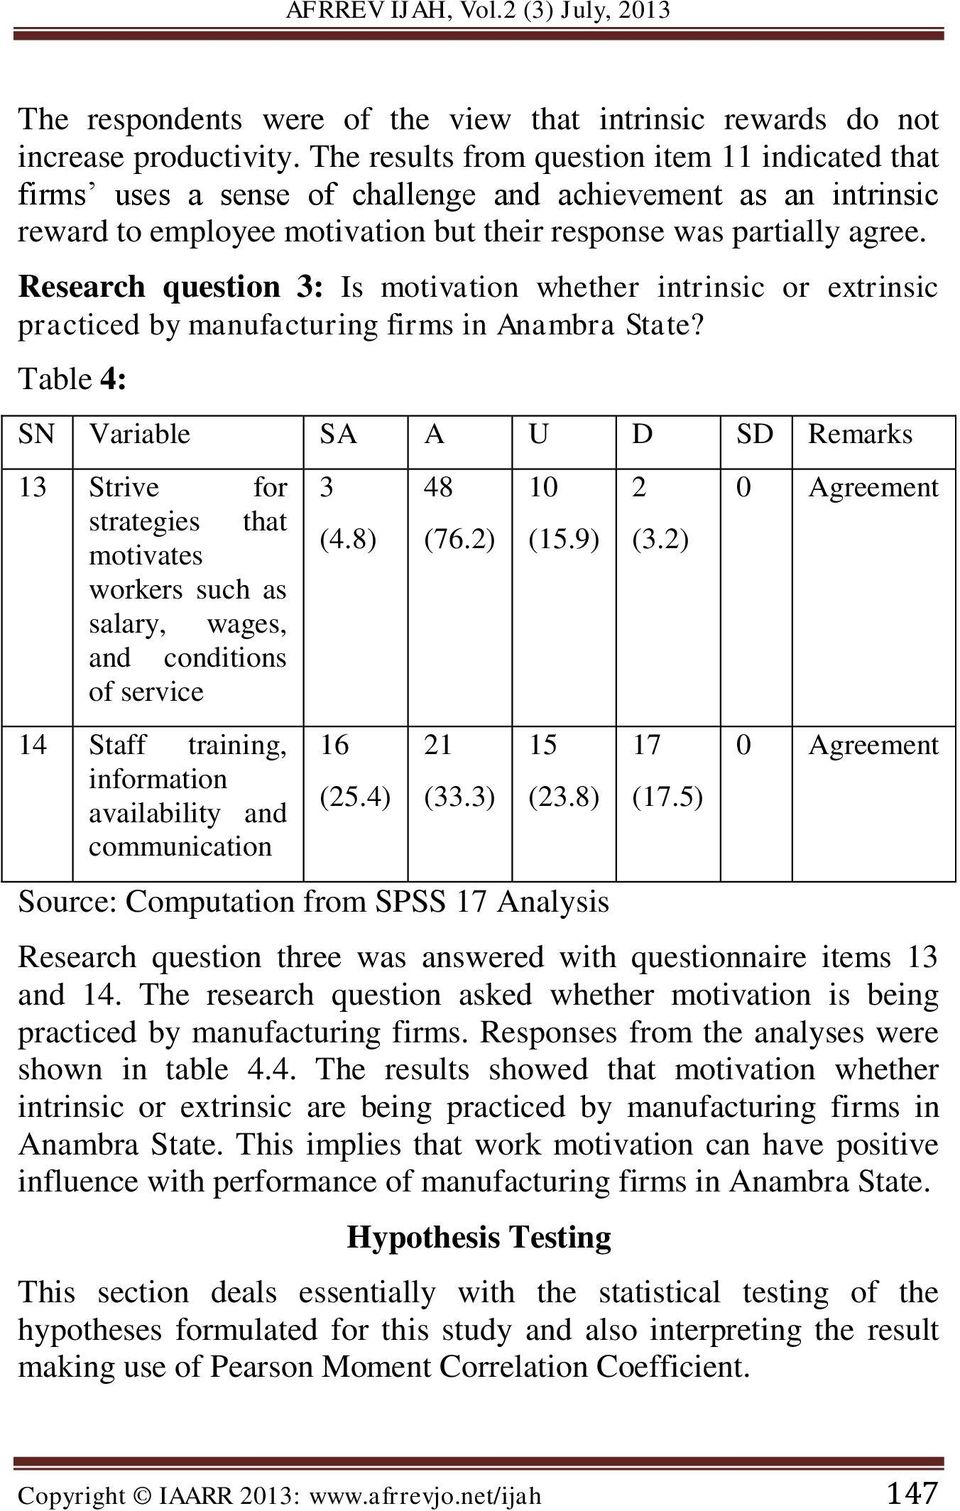 Research question 3: Is motivation whether intrinsic or extrinsic practiced by manufacturing firms in Anambra State?